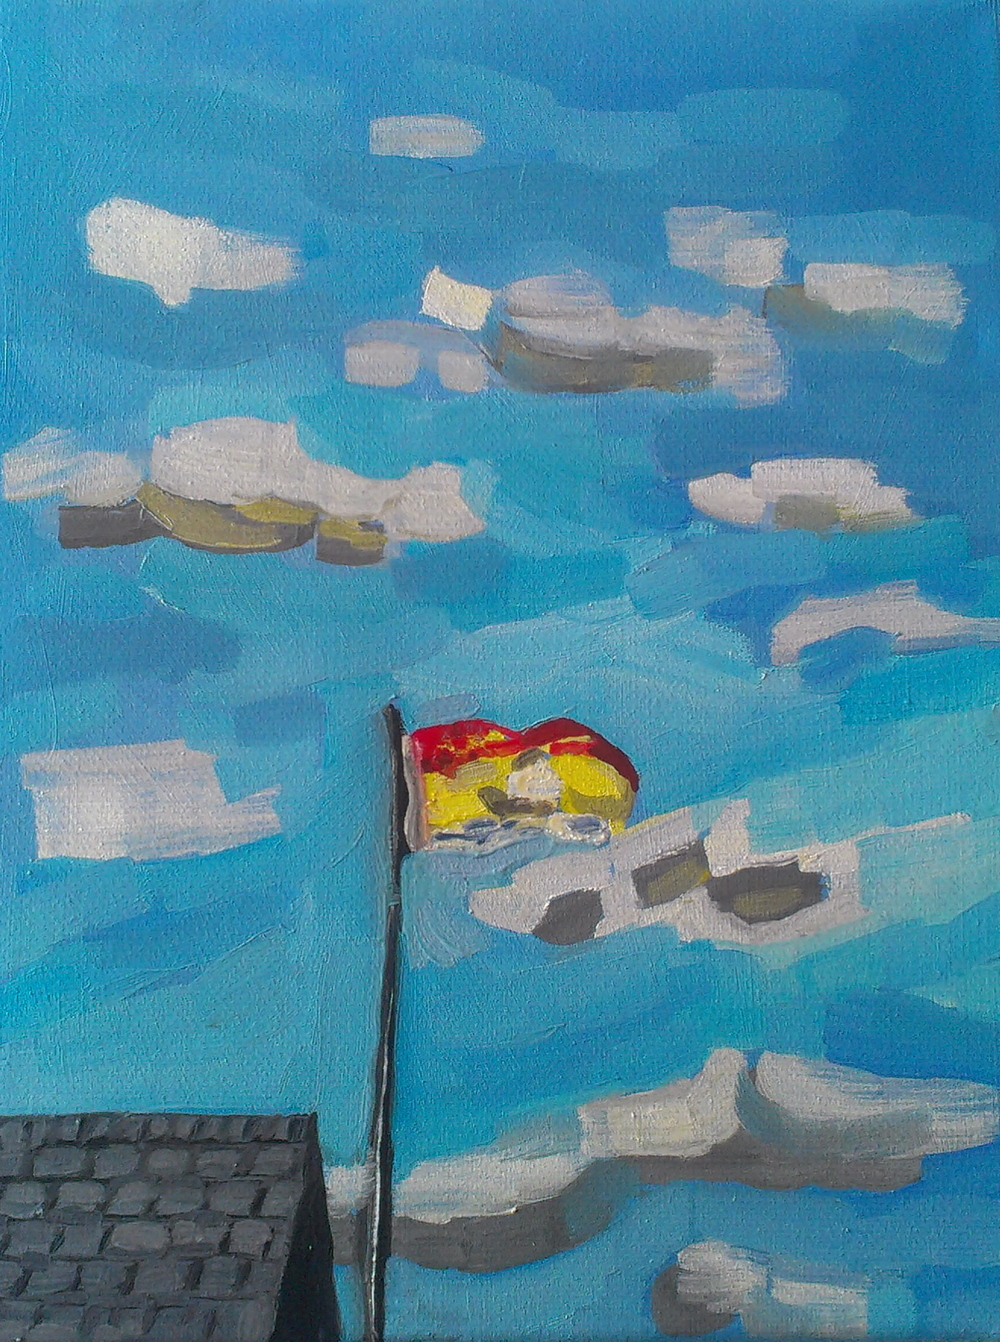 8 x 10 inches   oil and acrylic on canvas   2012